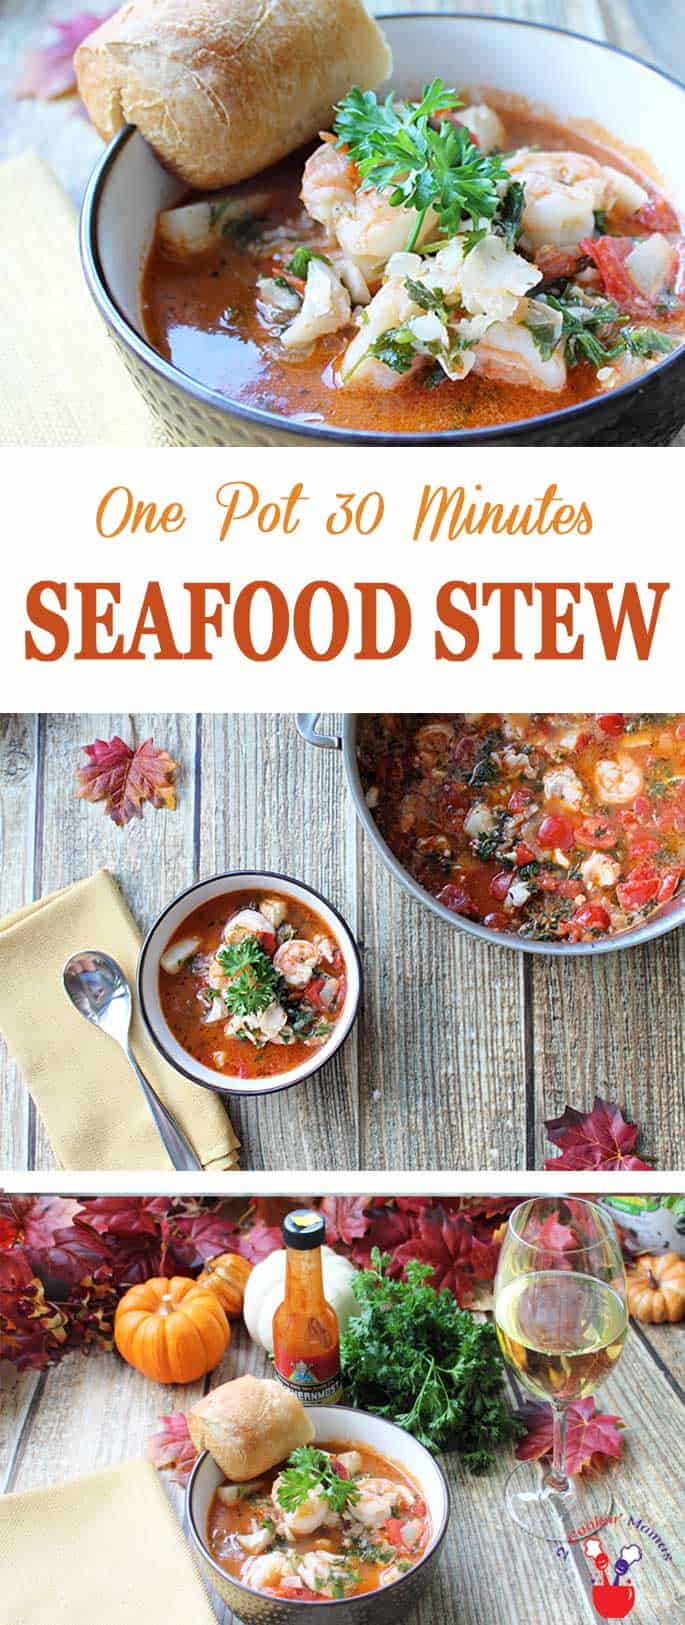 A one pot 30 minute seafood stew that's full of fish, shrimp, scallops, fresh tomatoes & spices. It's a fresh, hearty & healthy dinner for busy weeknights. #recipe #stew #seafood #dinner